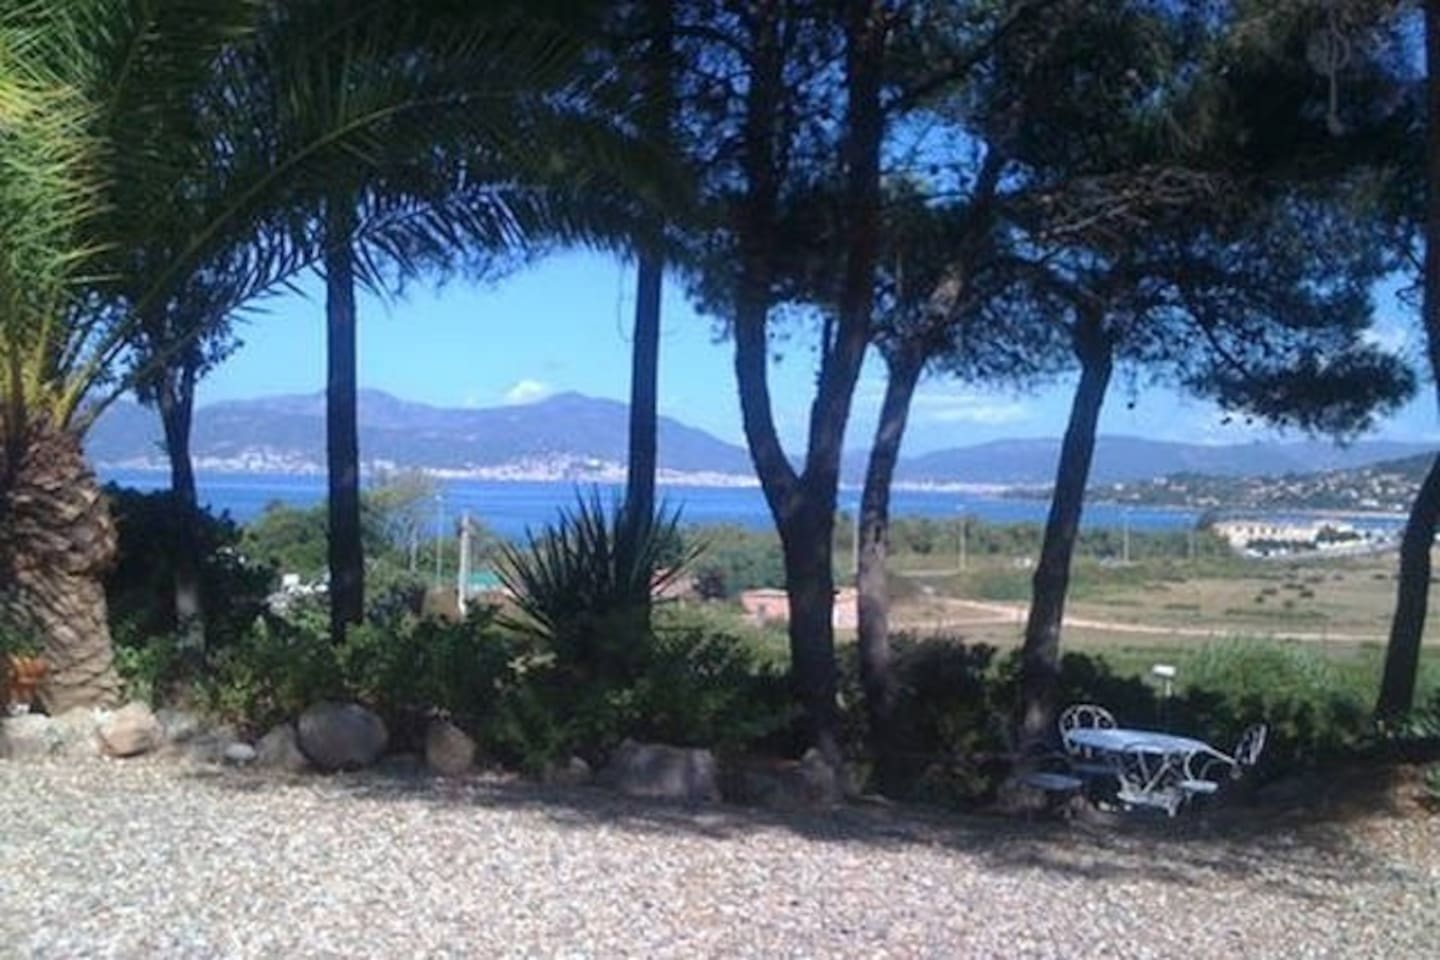 Welcome to one of the most beautiful panorama of Ajaccio Gulf